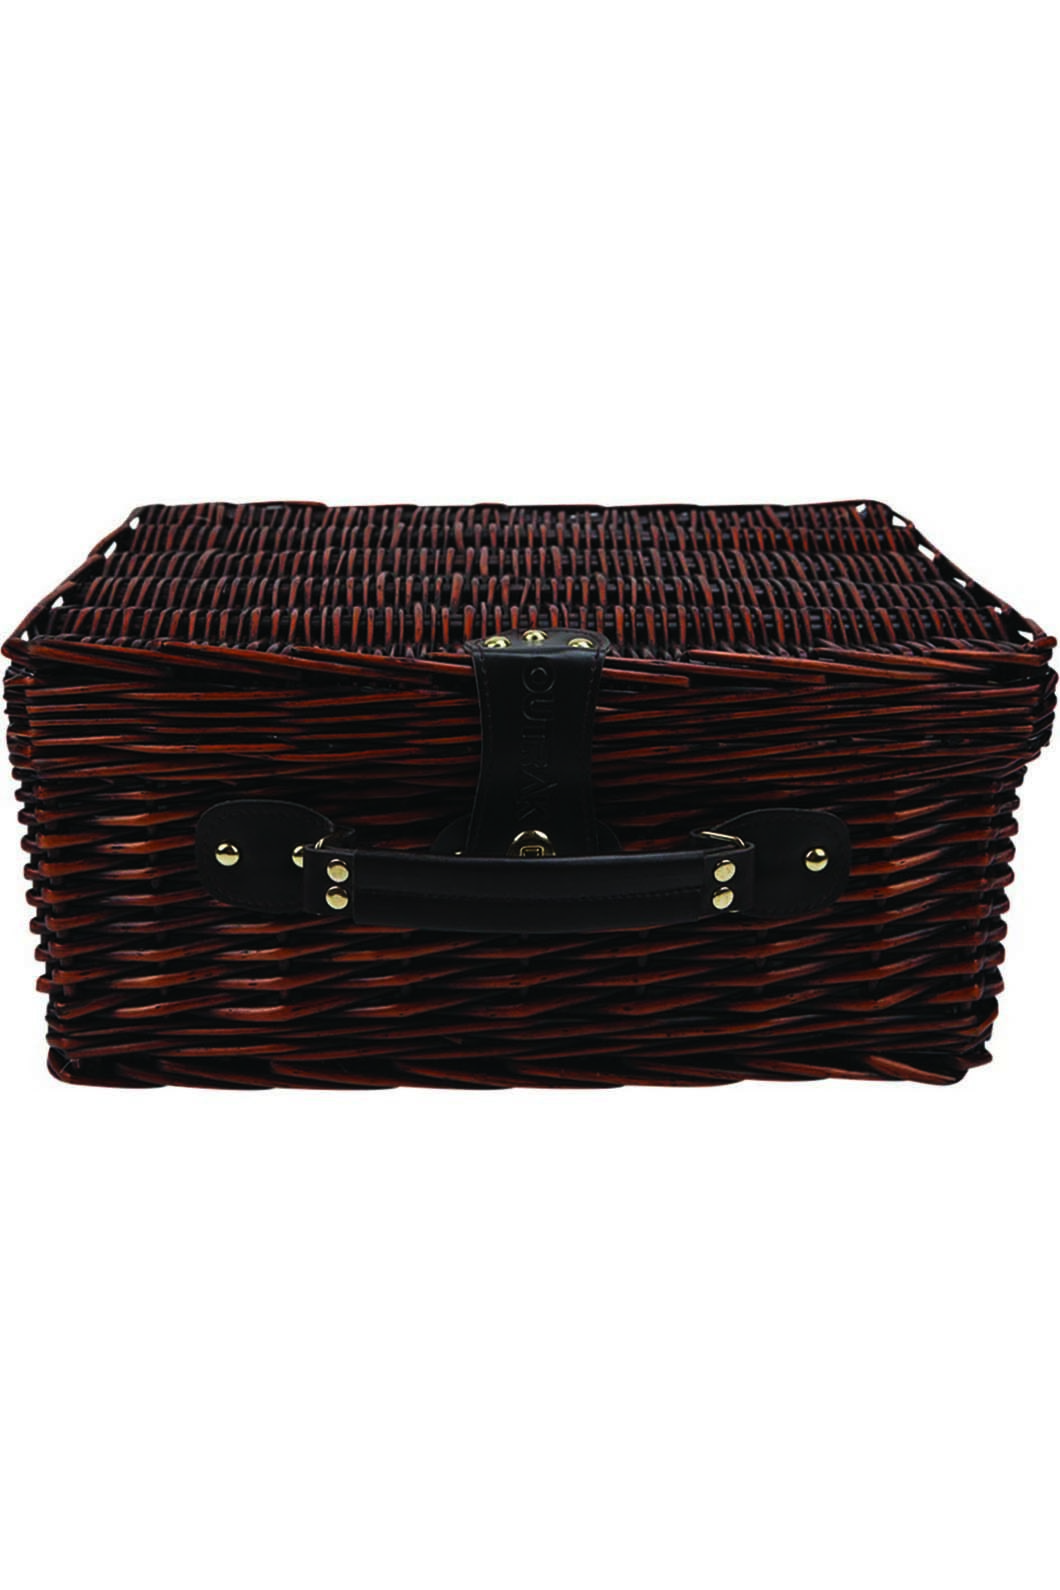 Outrak Picnic Basket 4 Person 4 Person, None, hi-res